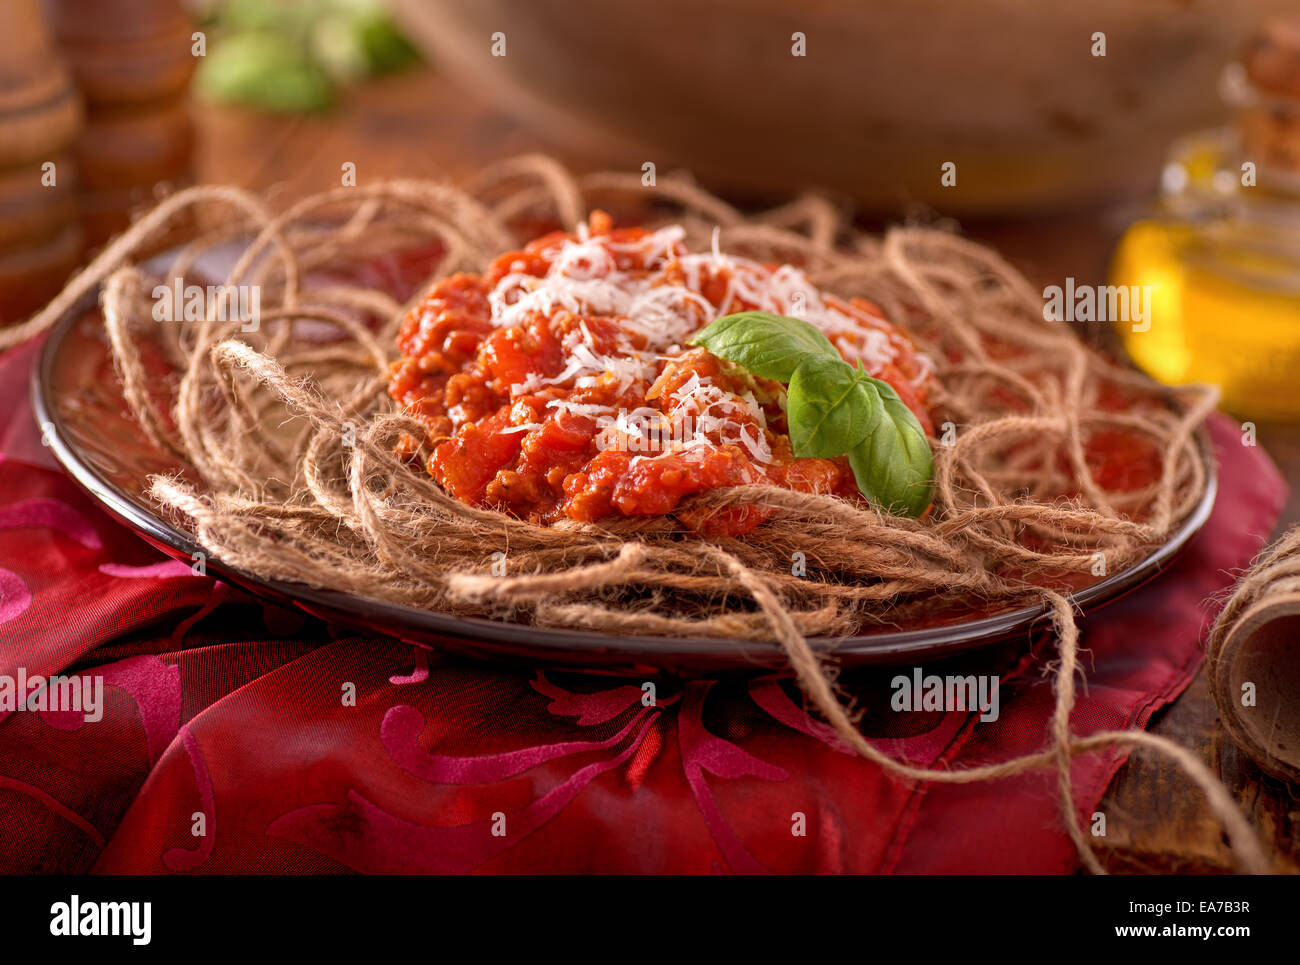 Food humour concept with spaghetti dinner made with twine. - Stock Image